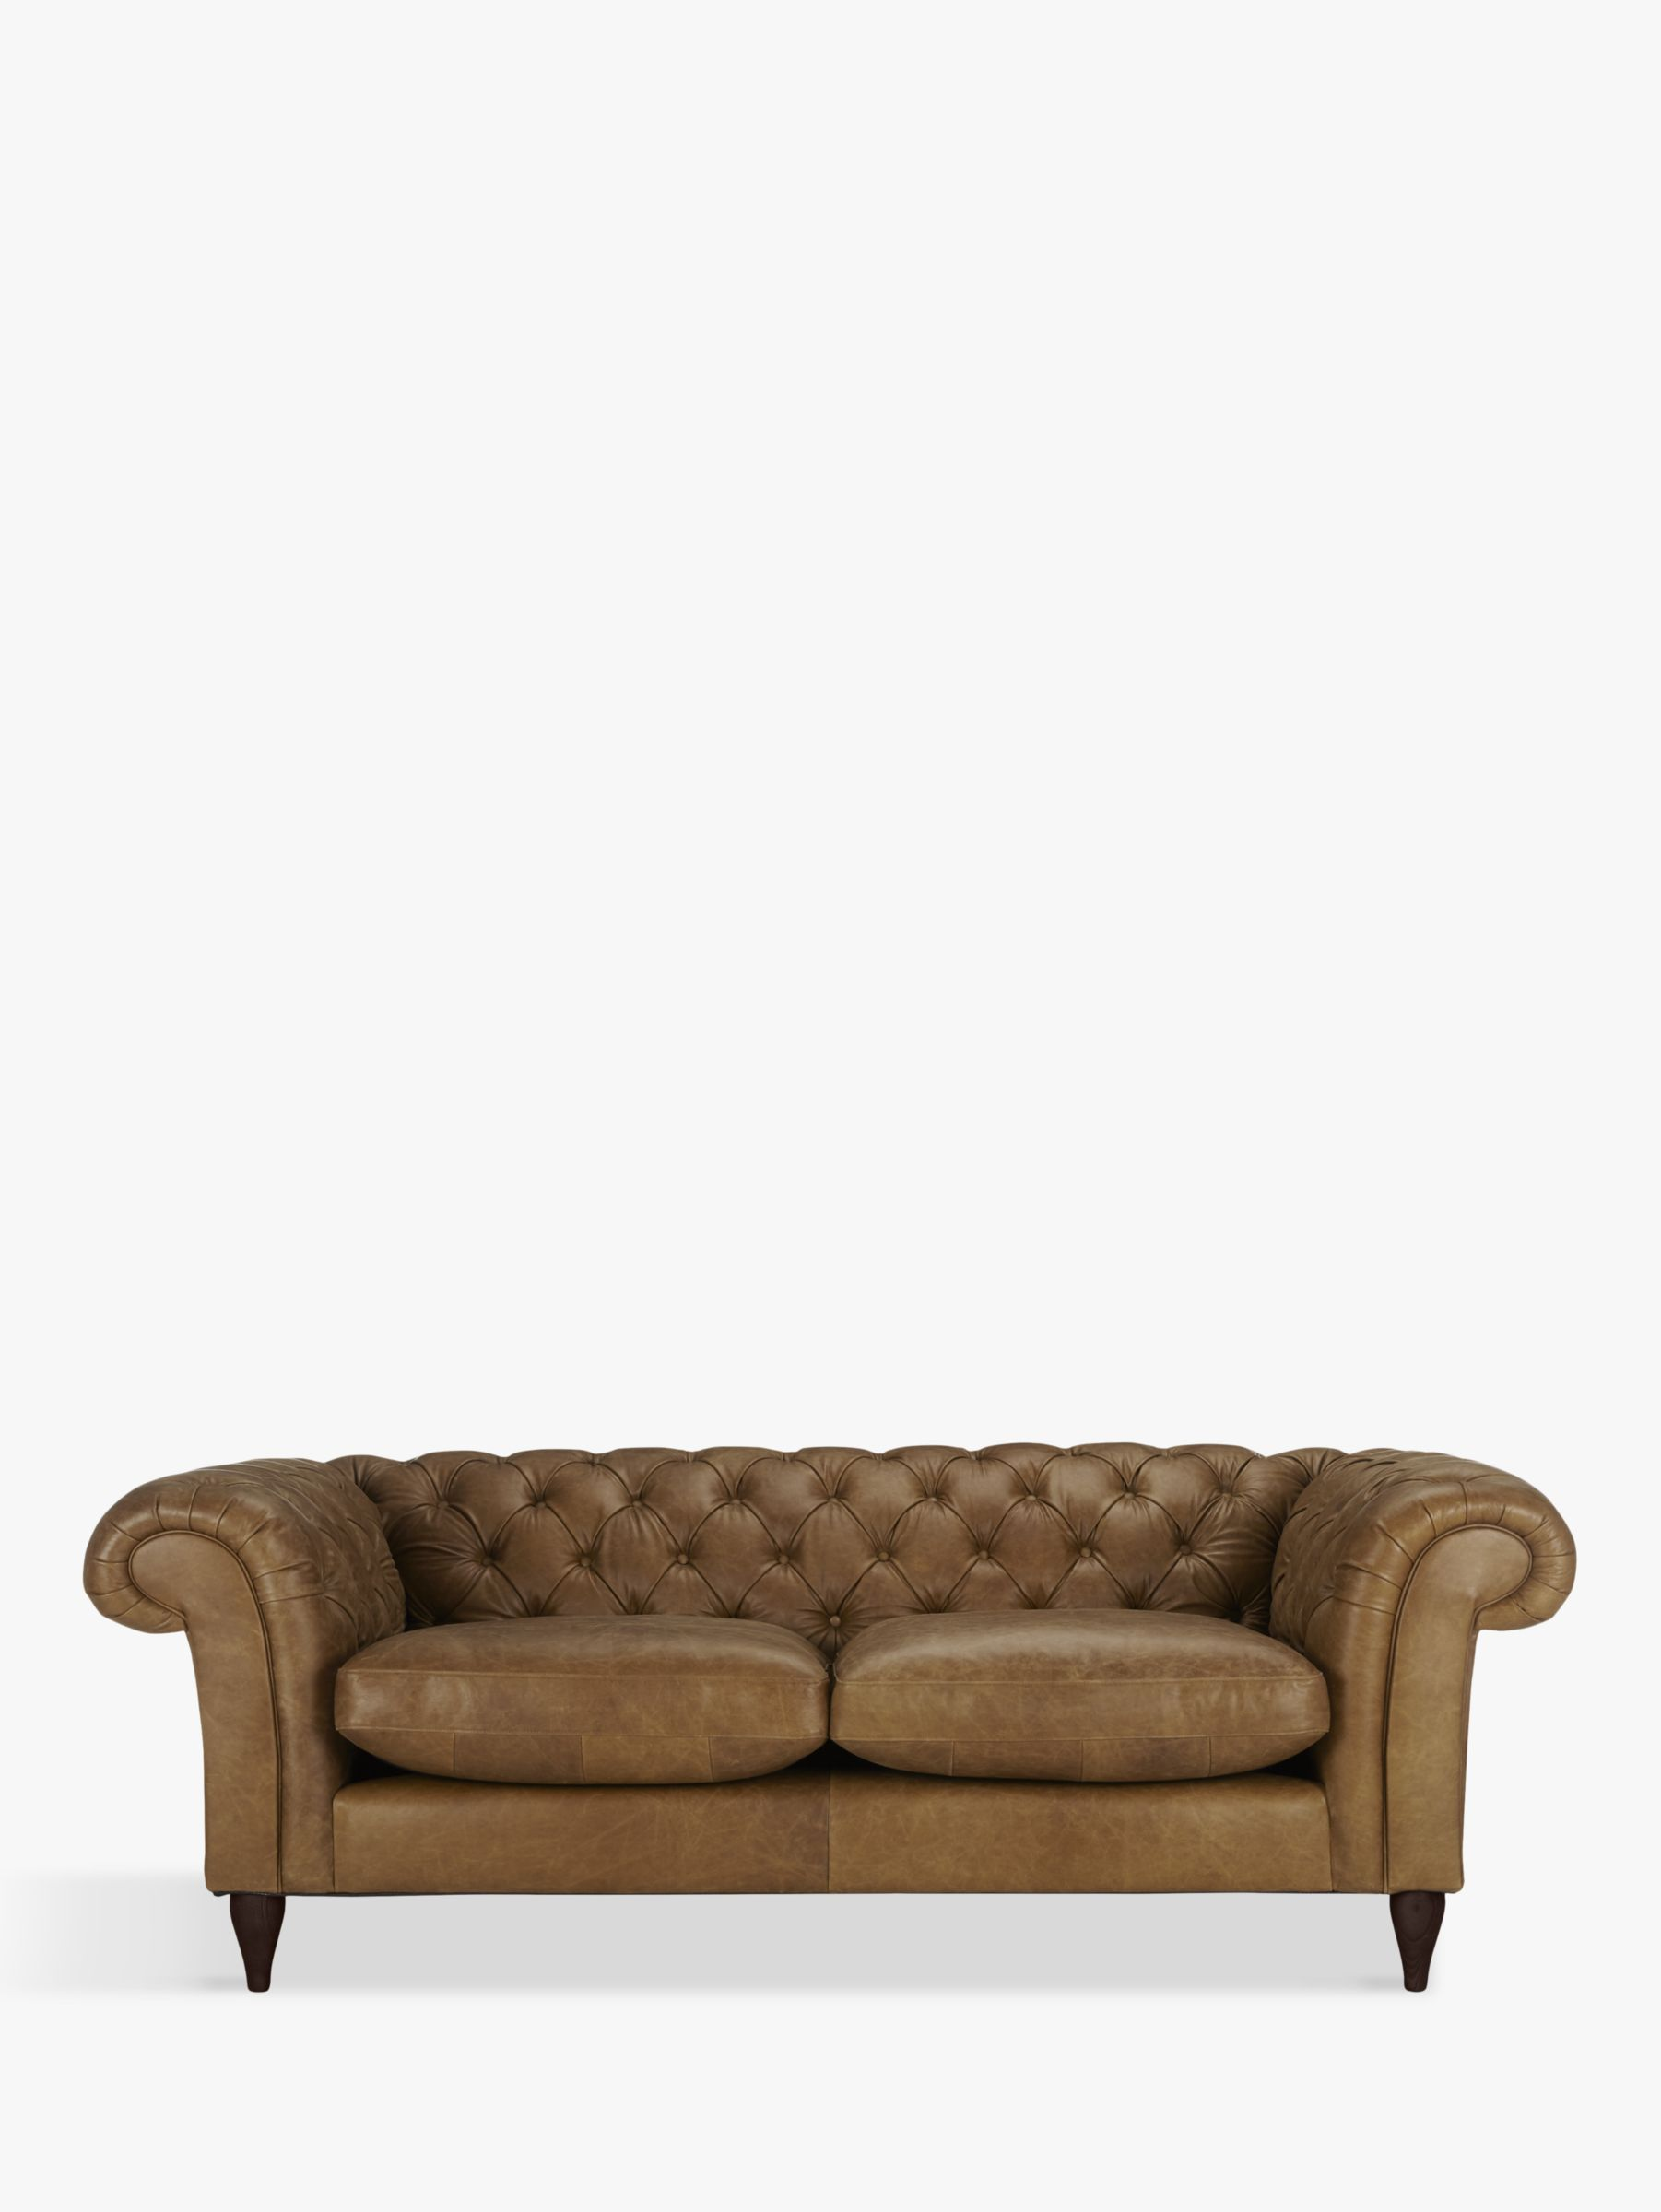 drummond grand leather sofa lazy boy madeline reviews chesterfield john lewis